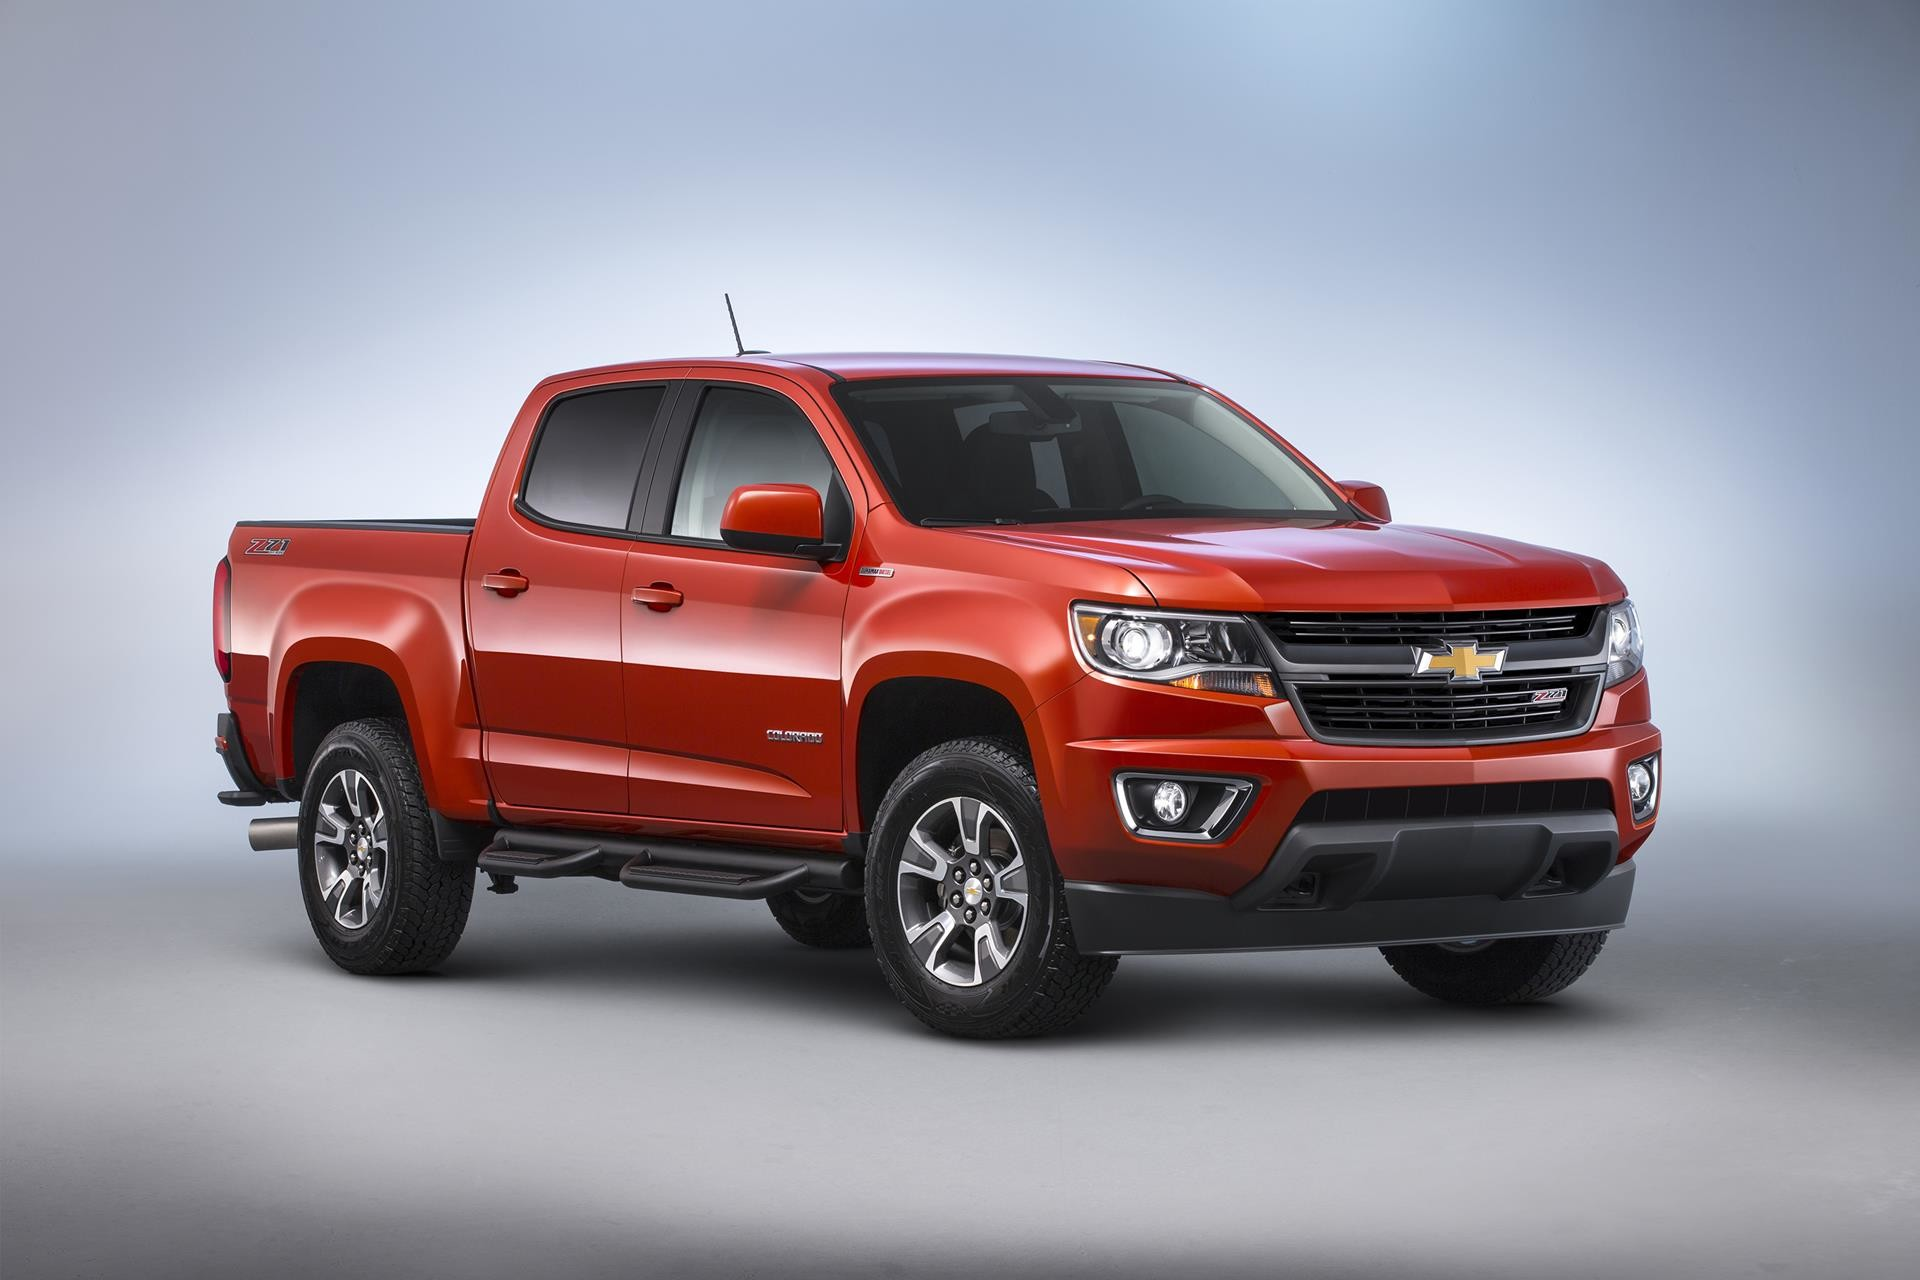 1920x1280 arrow_downward. 2016 Chevrolet Colorado Duramax Diesel Wallpapers